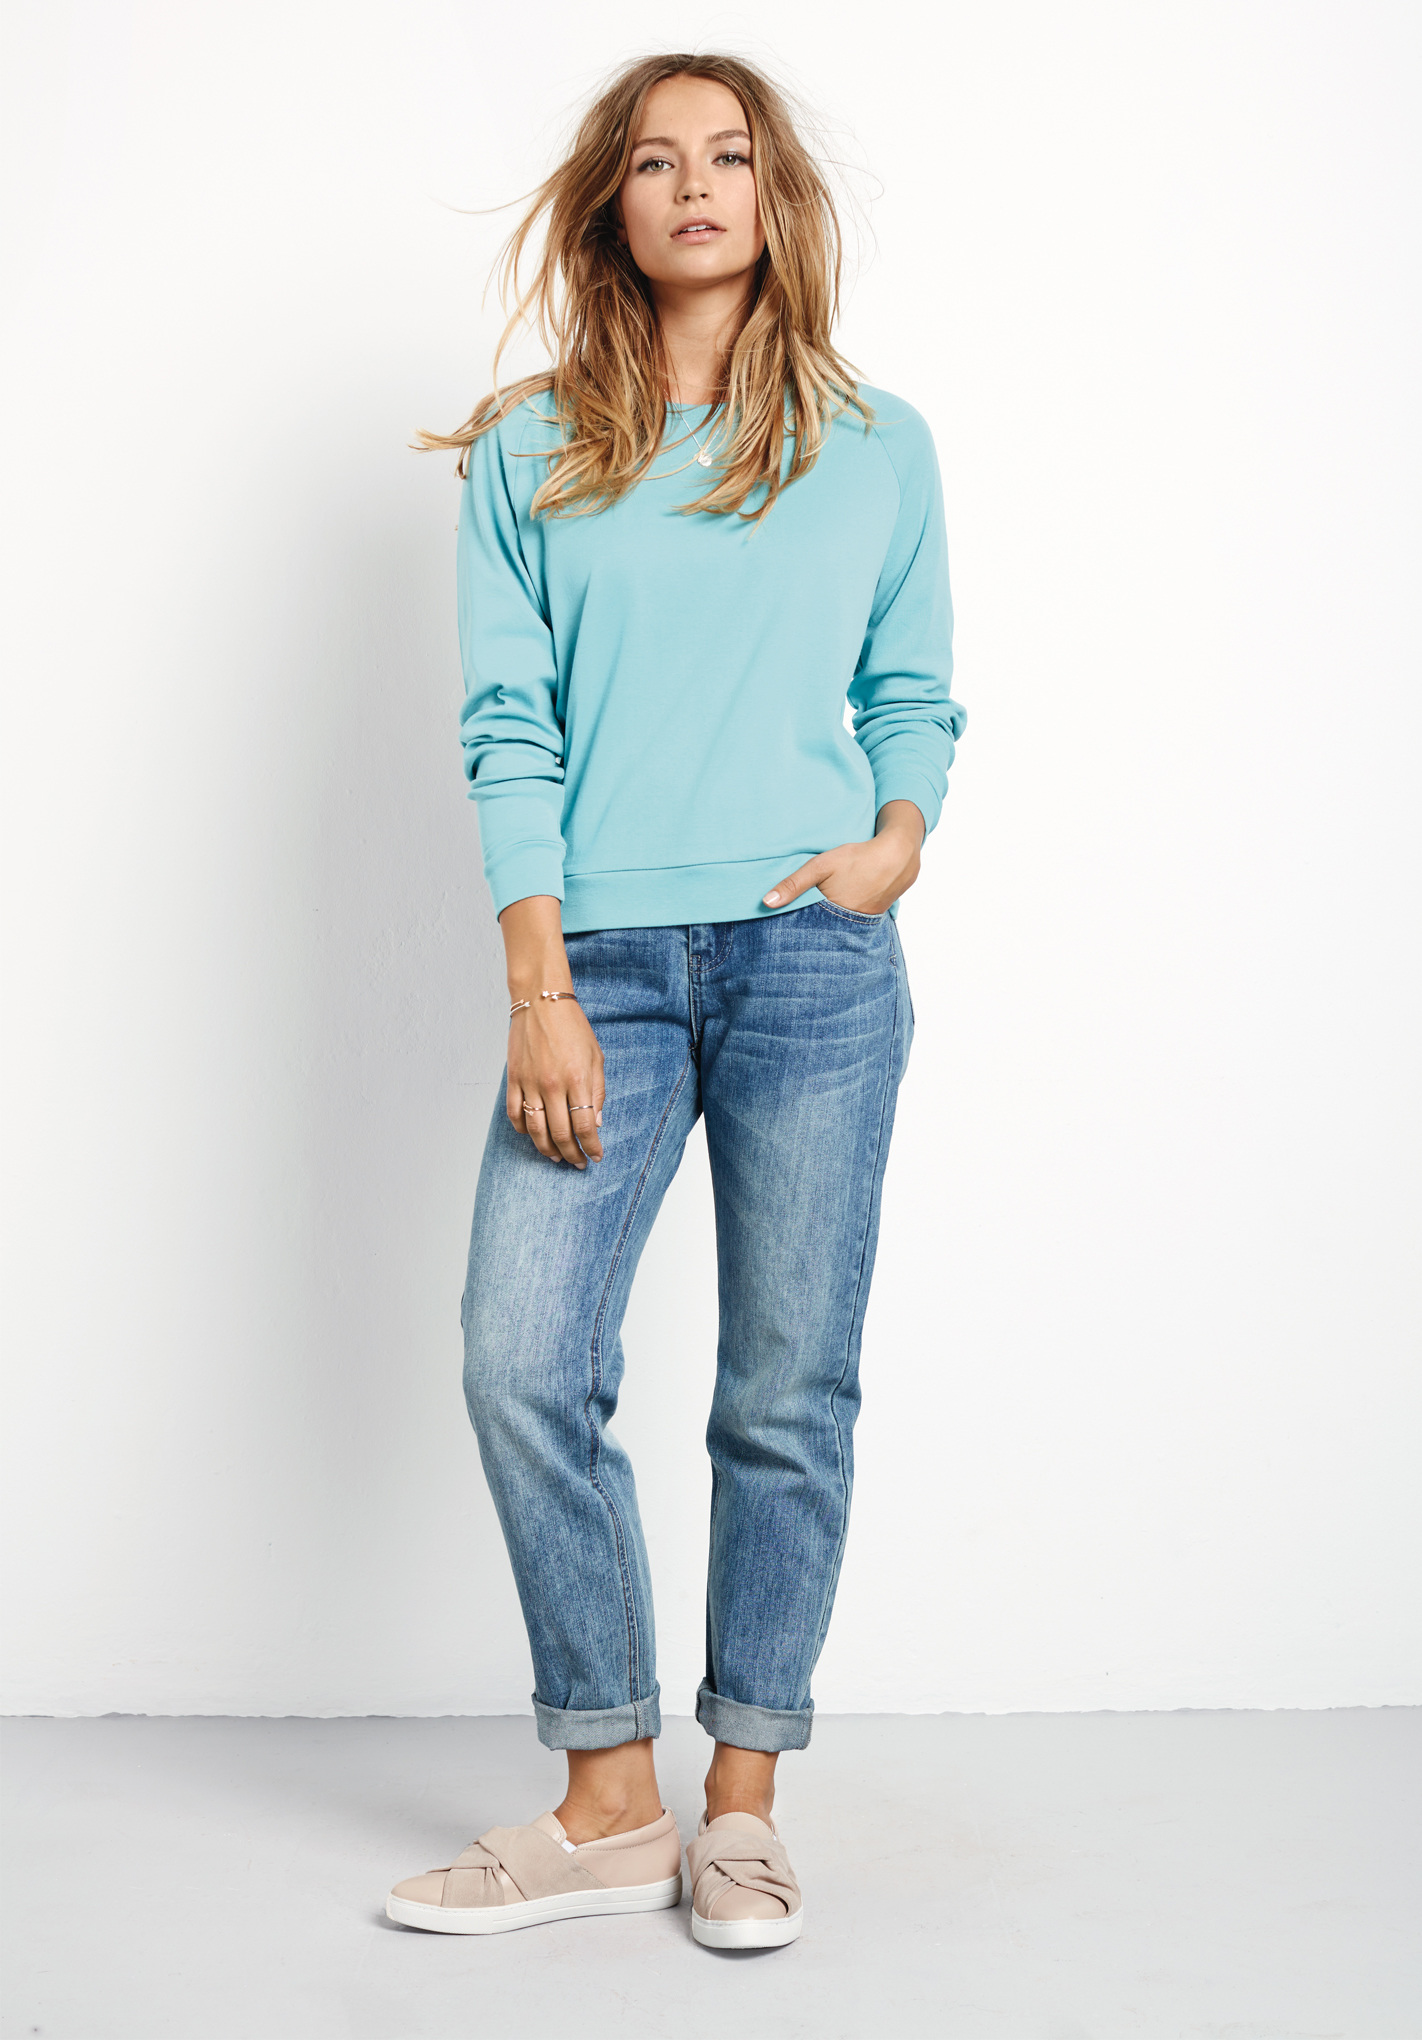 Your Favorite Boyfriend(s) - %color %size Boyfriend Jeans for Women. Whether you're out on the town, running errands or even enjoying downtime - the best boyfriend is always there when you need them. We're talking about the fact that we just can't get enough of these %color %size boyfriend jeans (though you might know them as mom jeans).